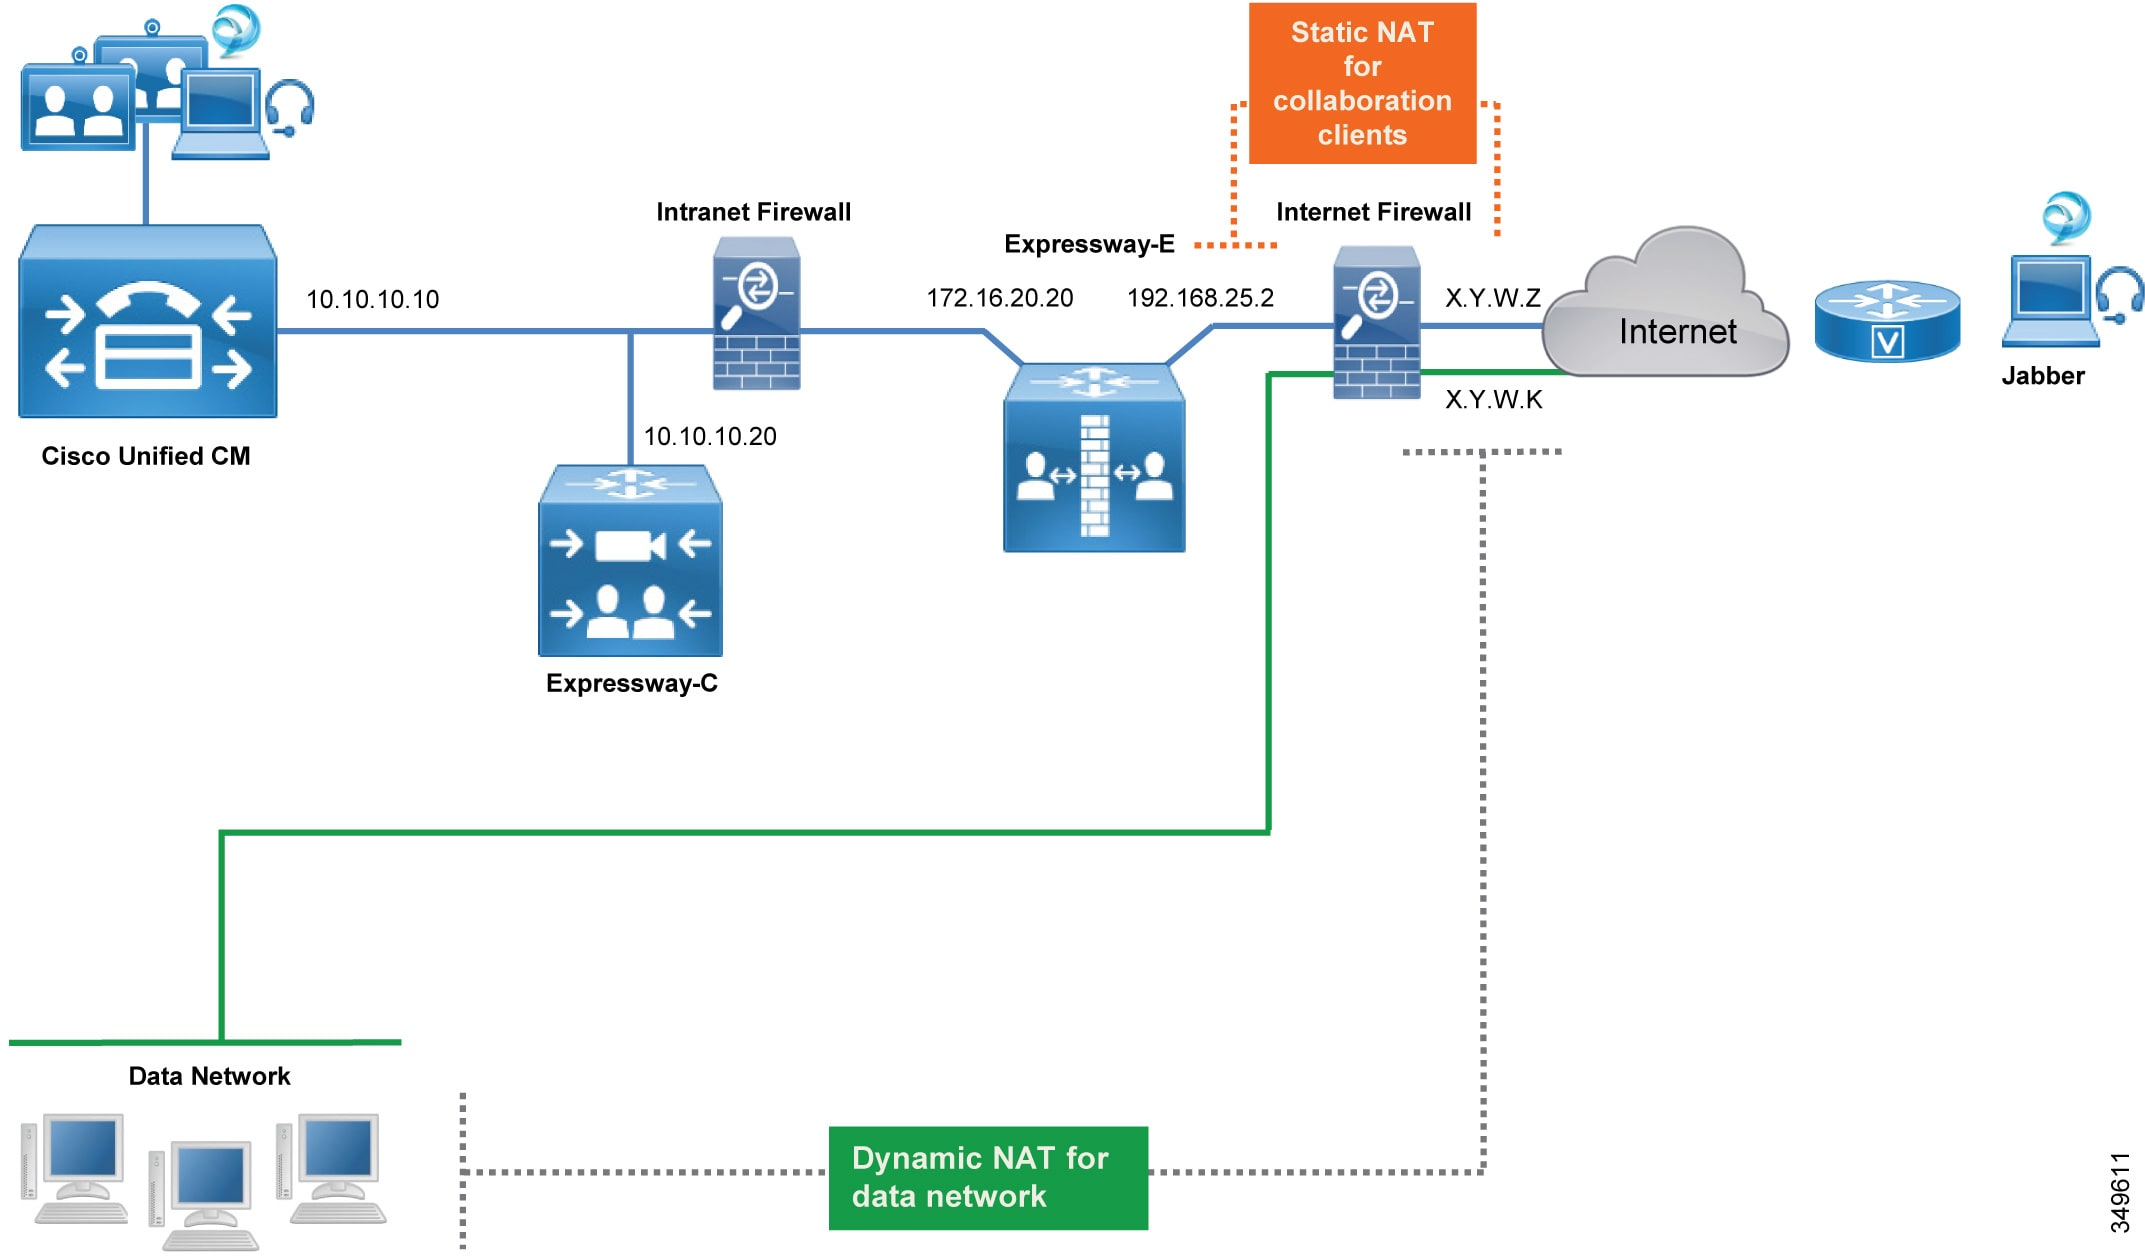 Cisco Preferred Architecture For Enterprise Collaboration 116 Cvd Network Diagram Internetbased Servers Scenario 4 With Internet When An Endpoint On The Connects To Unified Cm Or Other Application Through Expressway Its Ip Address Is First Translated A